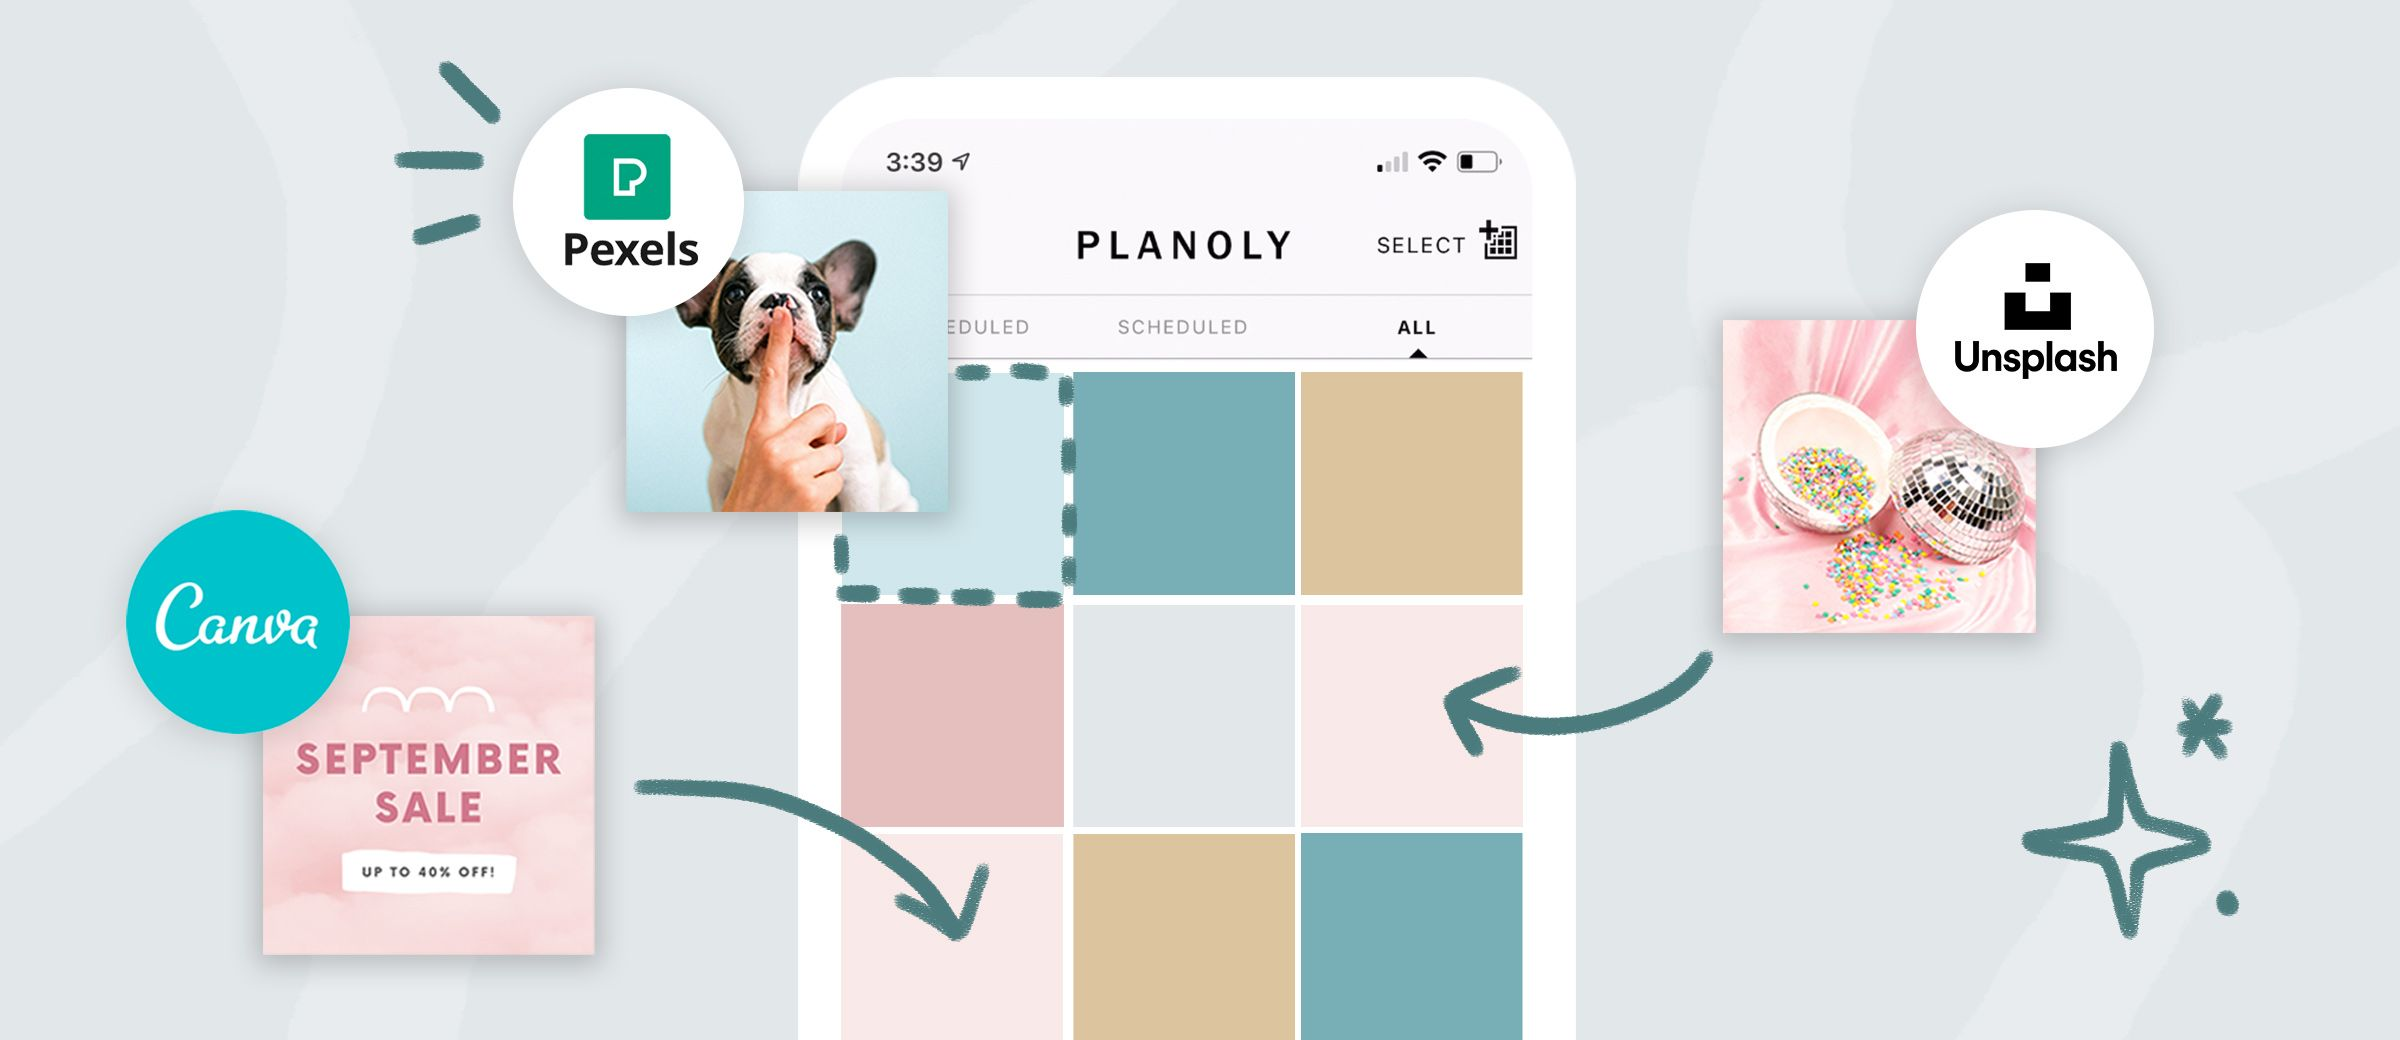 Read about Top 3 PLANOLY Features to Make Content Planning Easier, on PLANOLY